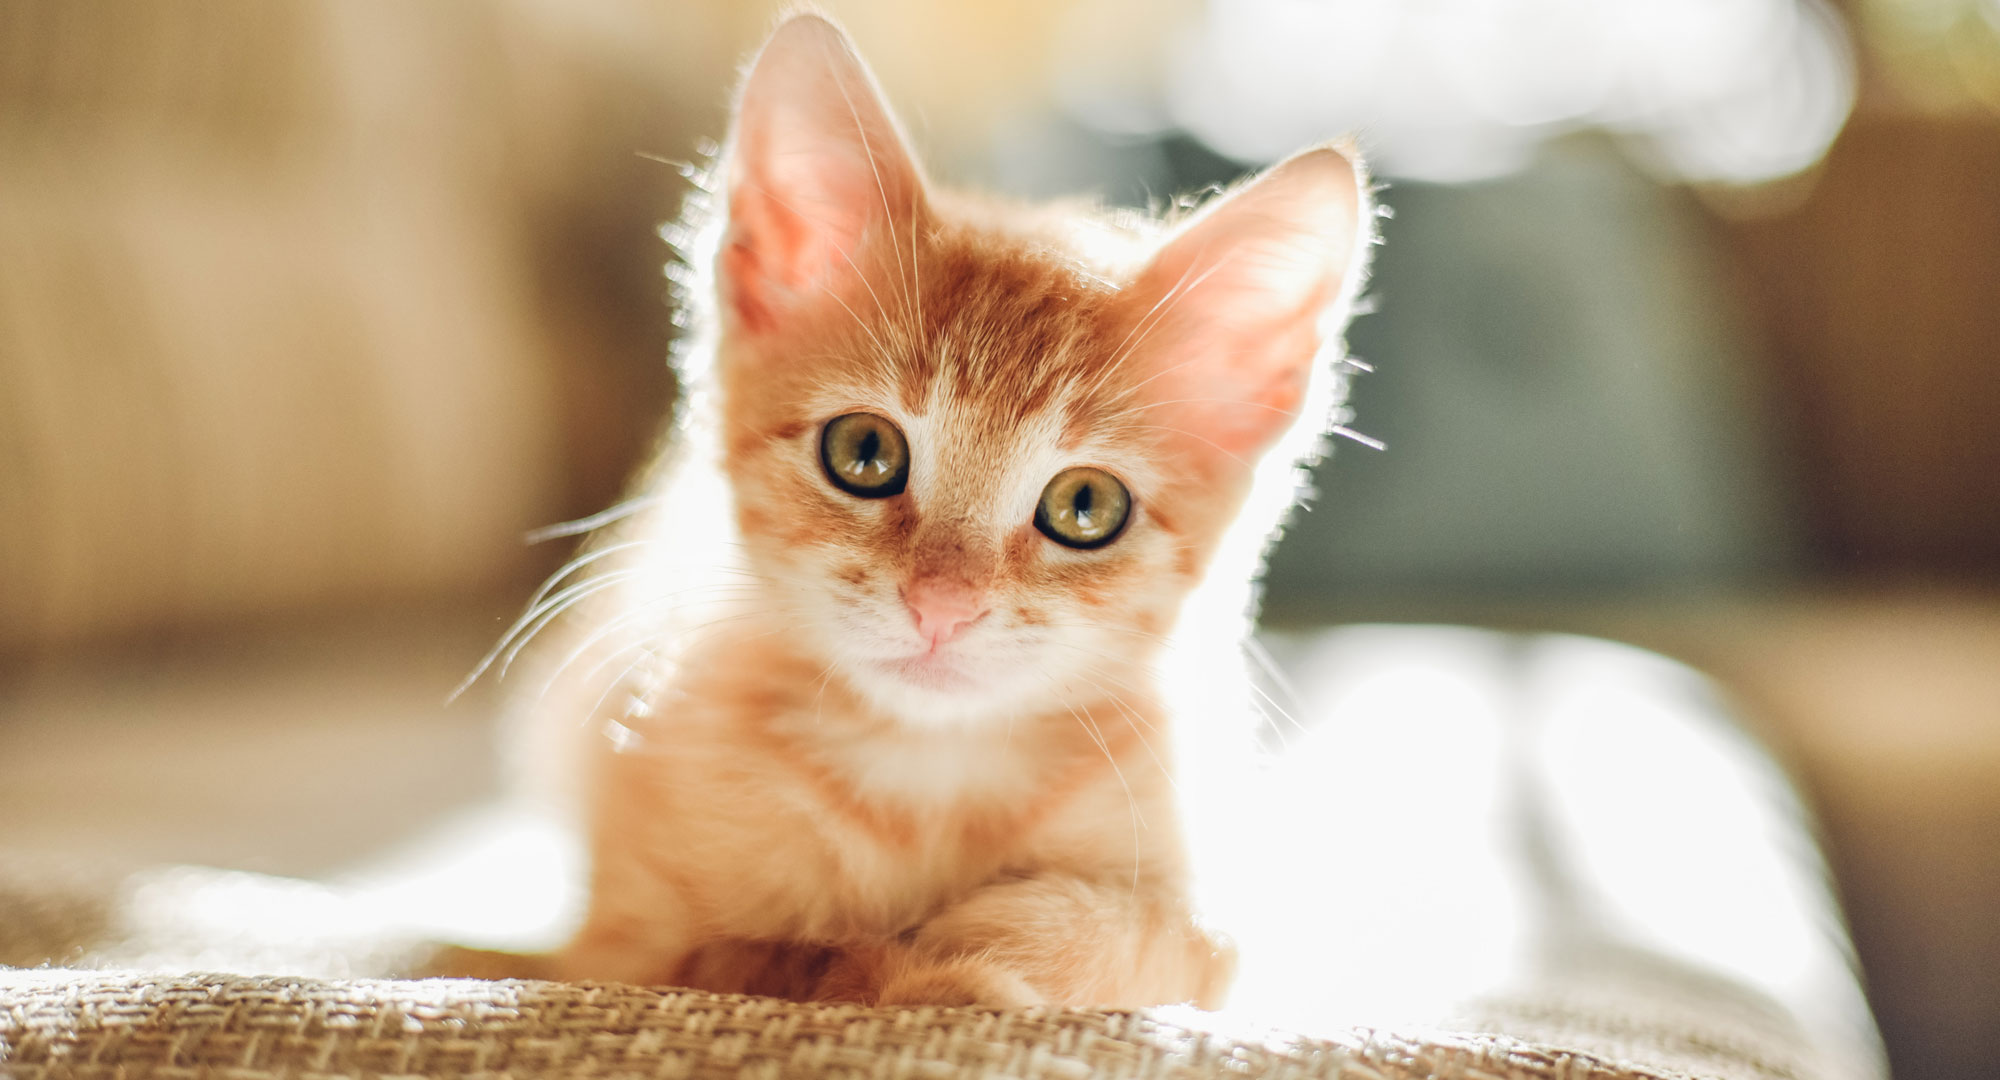 How to Kitten-proof Your Home the Right Way